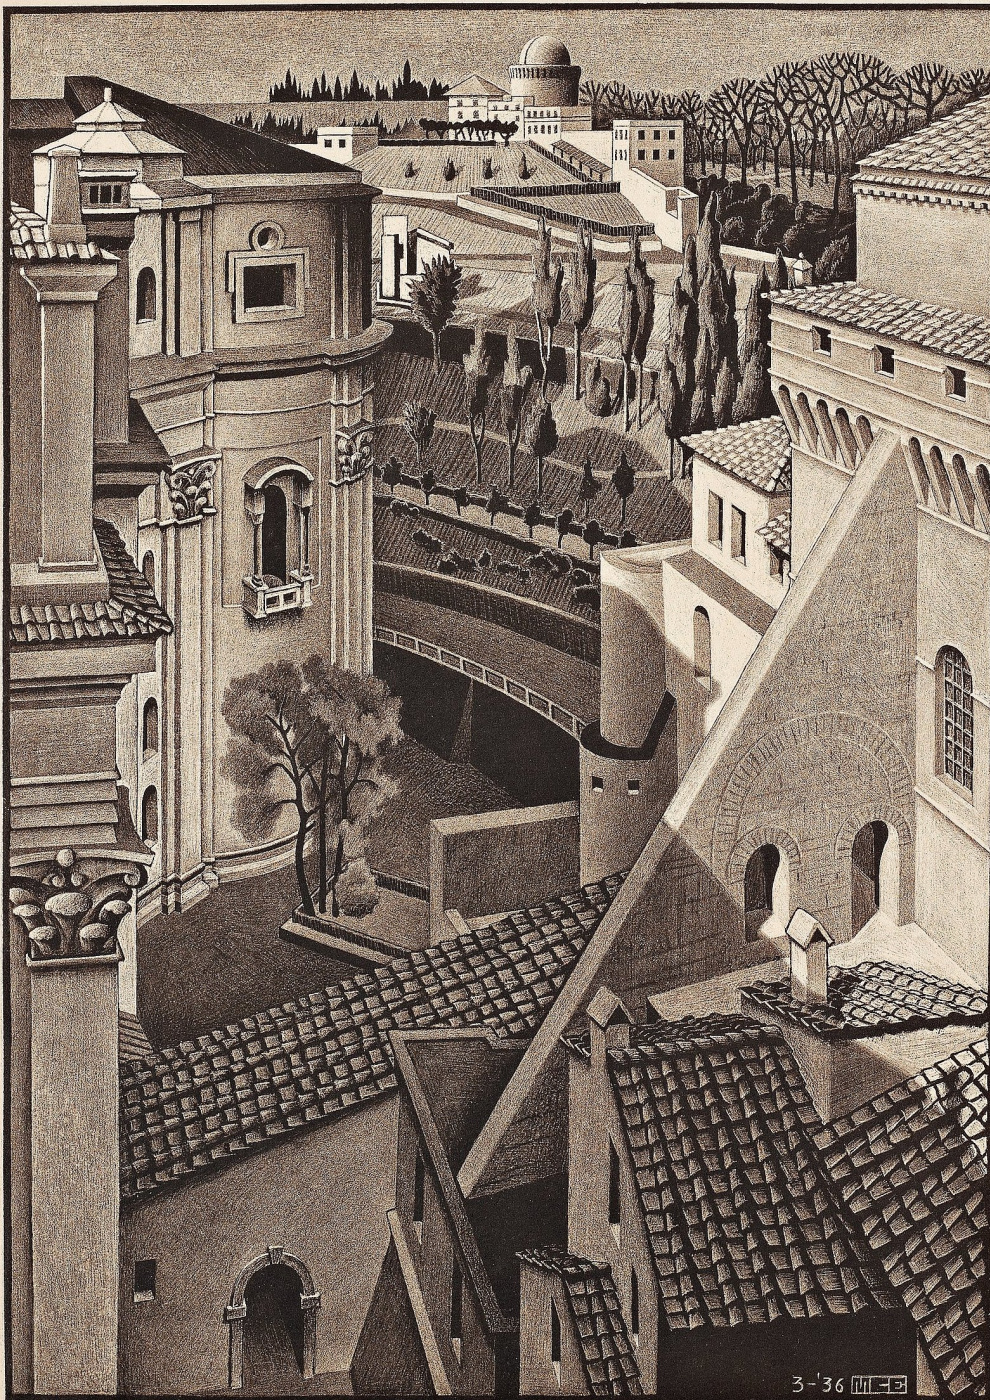 Maurits Cornelis Escher. Between the Cathedral of St. Peter and the Sistine Chapel